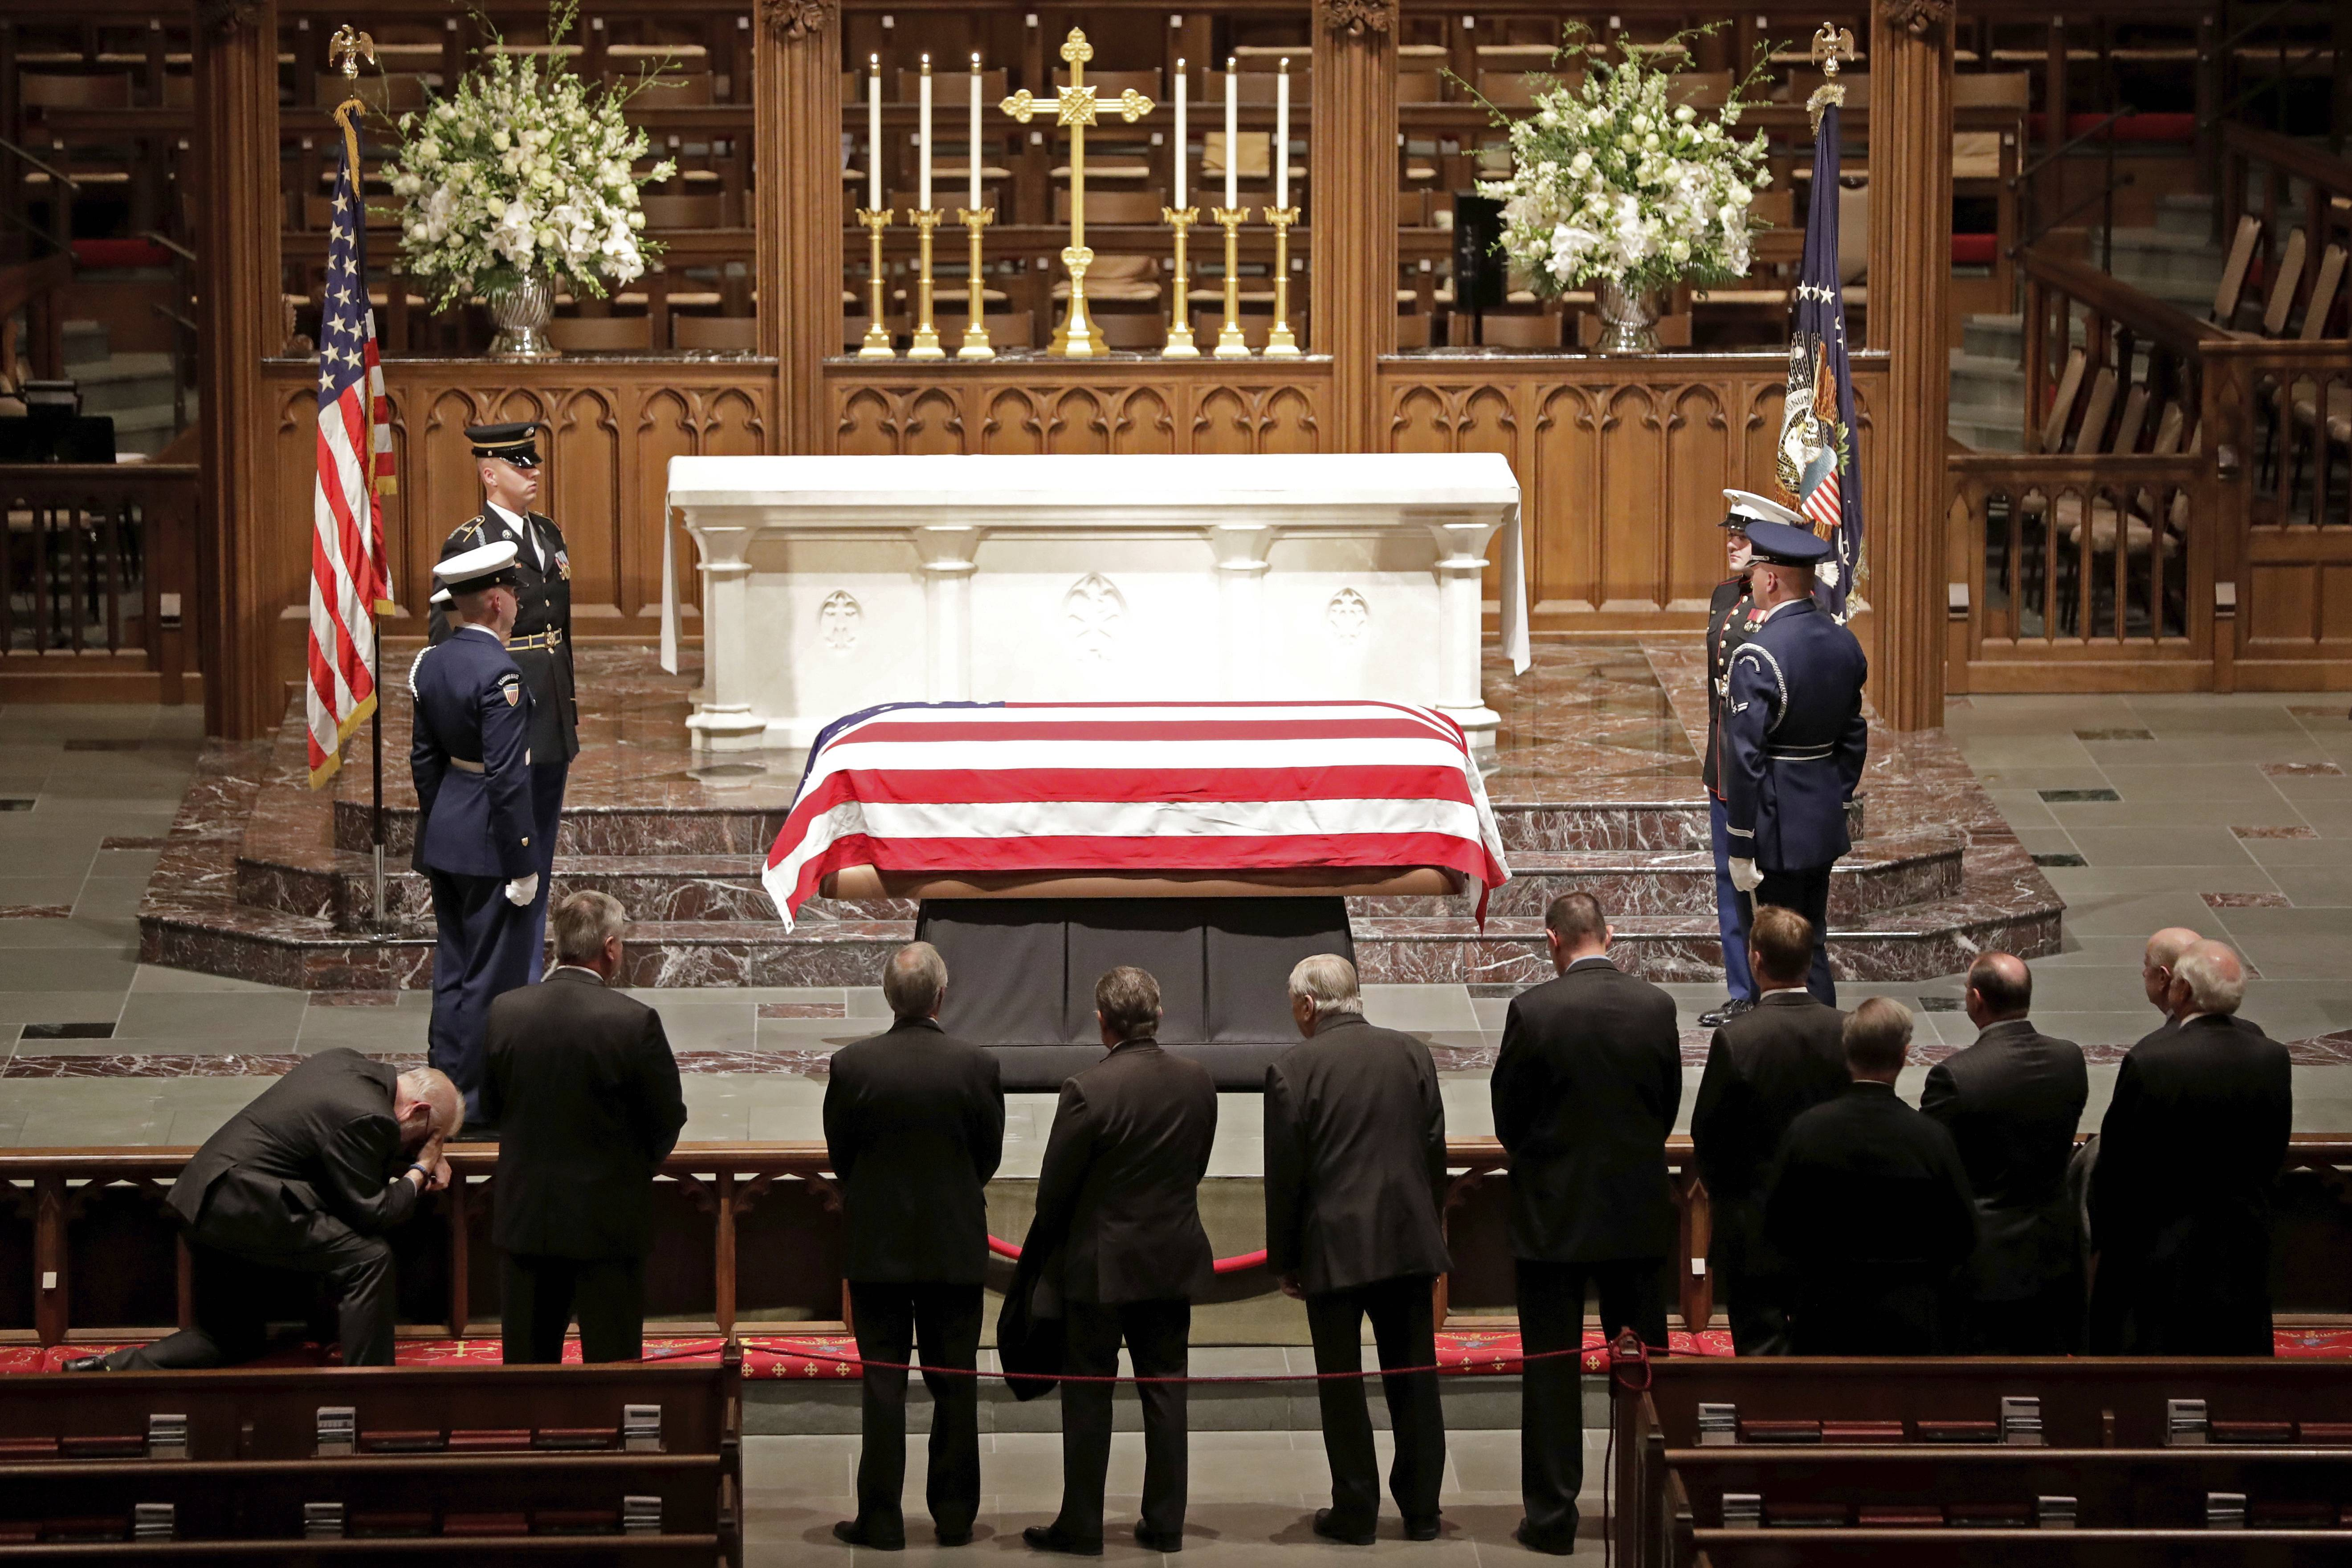 Visitors pay their respects Wednesday to the flag-draped casket of former President George H.W. Bush at St. Martin's Episcopal Church in Houston.